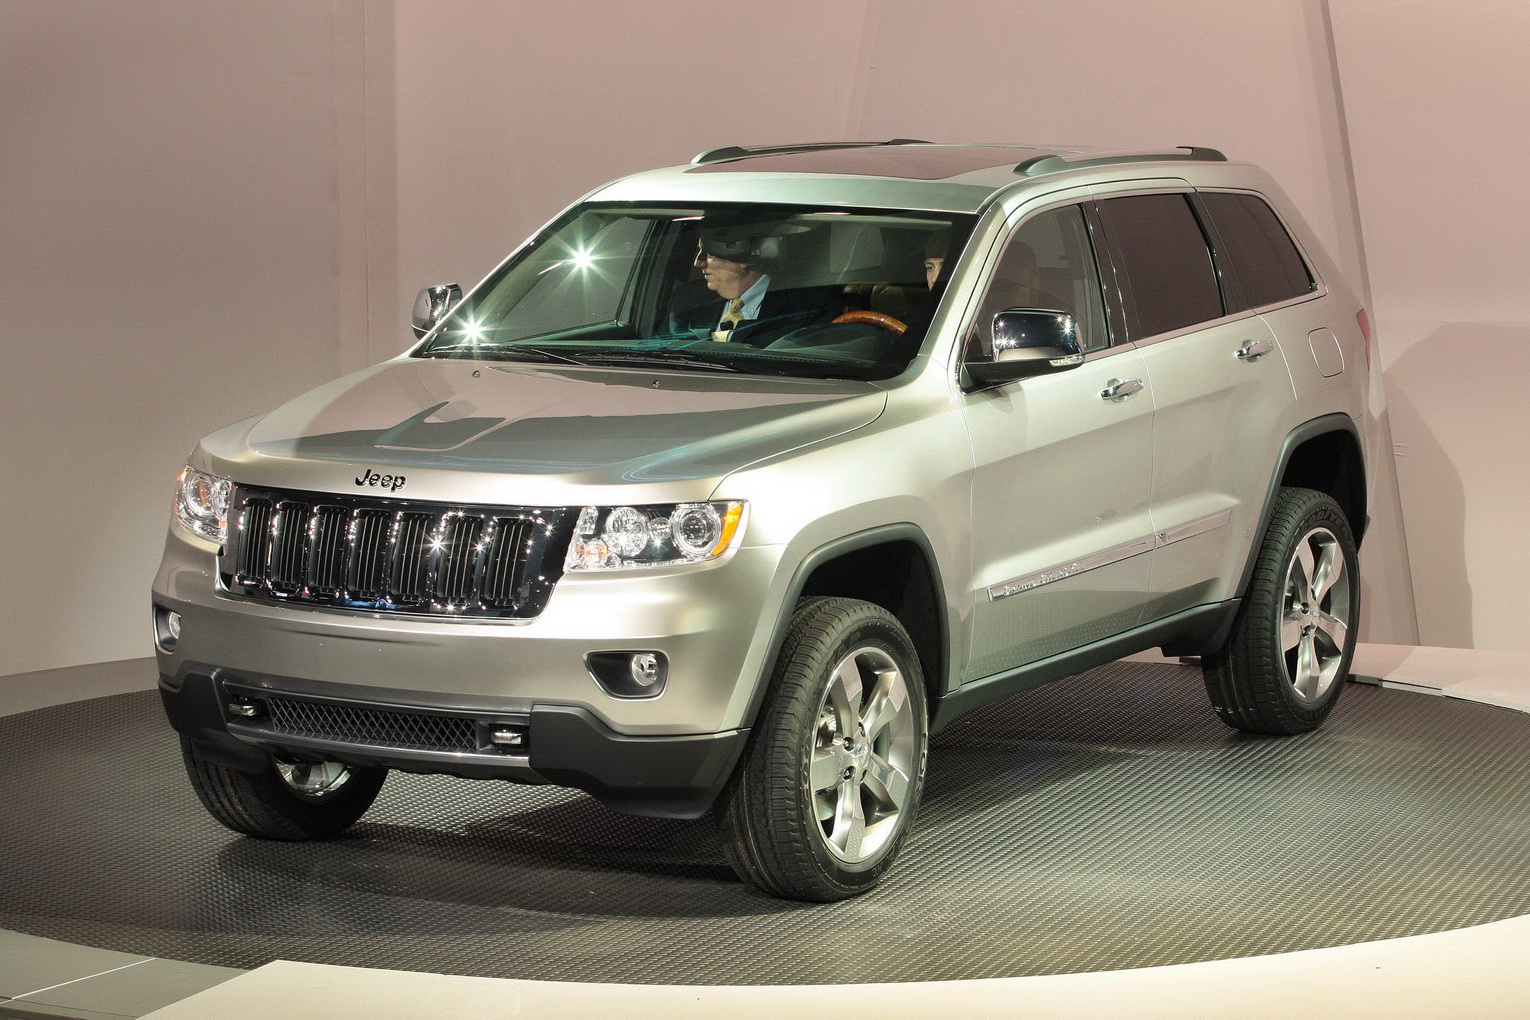 the car 2011 jeep grand cherokee prices announced starts from 32 995. Black Bedroom Furniture Sets. Home Design Ideas